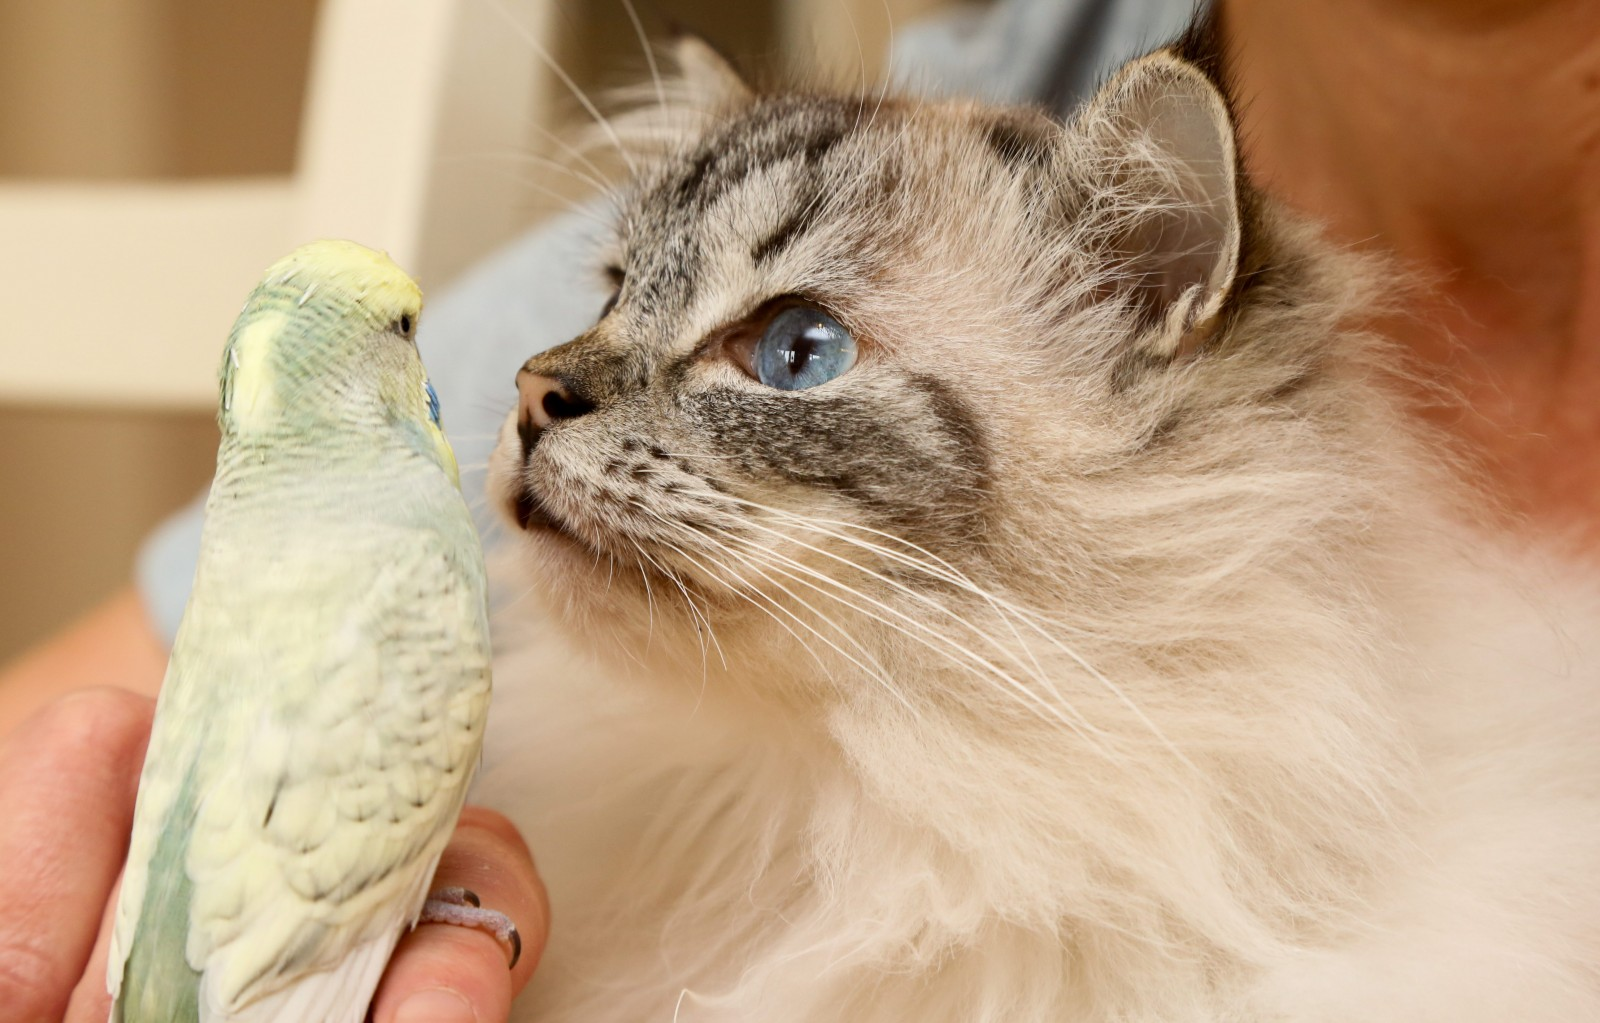 Cat and budgie put aside their differences to become unlikely best friends